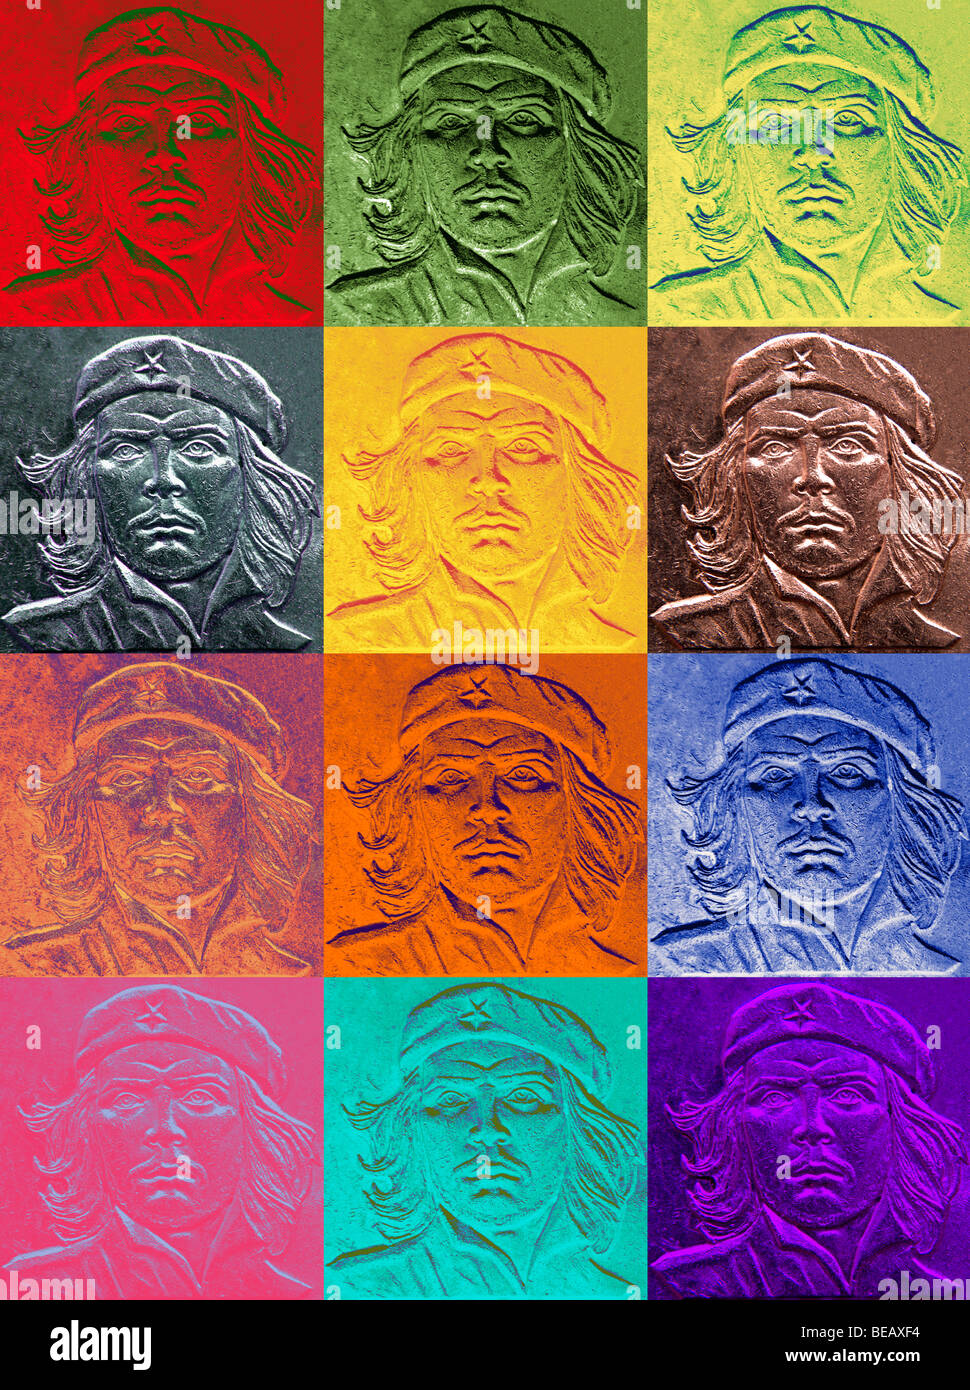 Original high resolution pop art collage of Che Guevarra. By Jamie Marshall. Large format - Stock Image